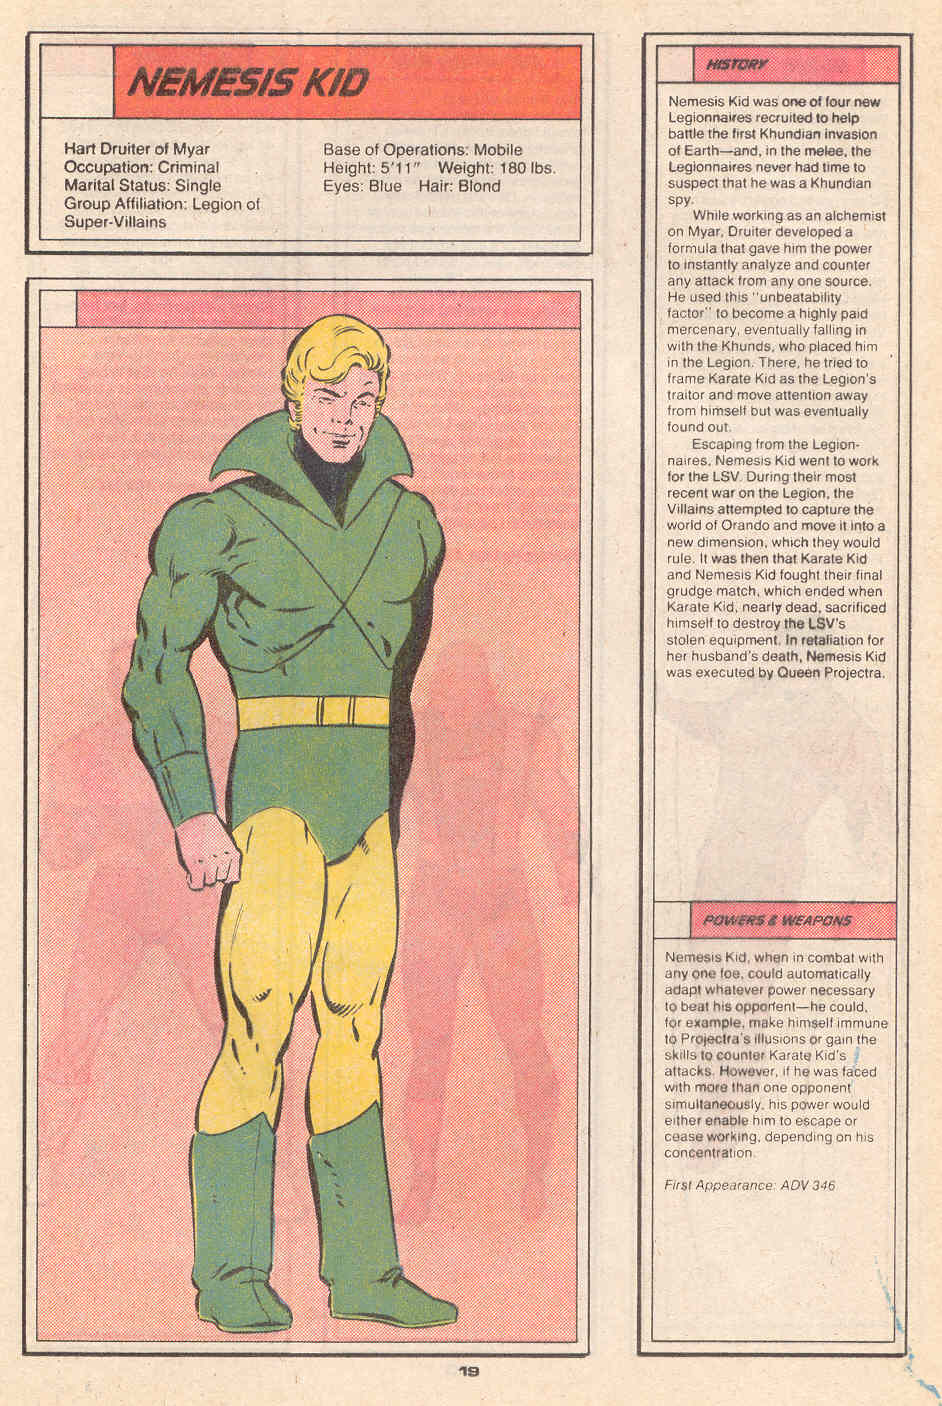 Nemesis Kid by Keith Giffen and Larry Mahlstedt - Who's Who in the Legion of Super-Heroes #4